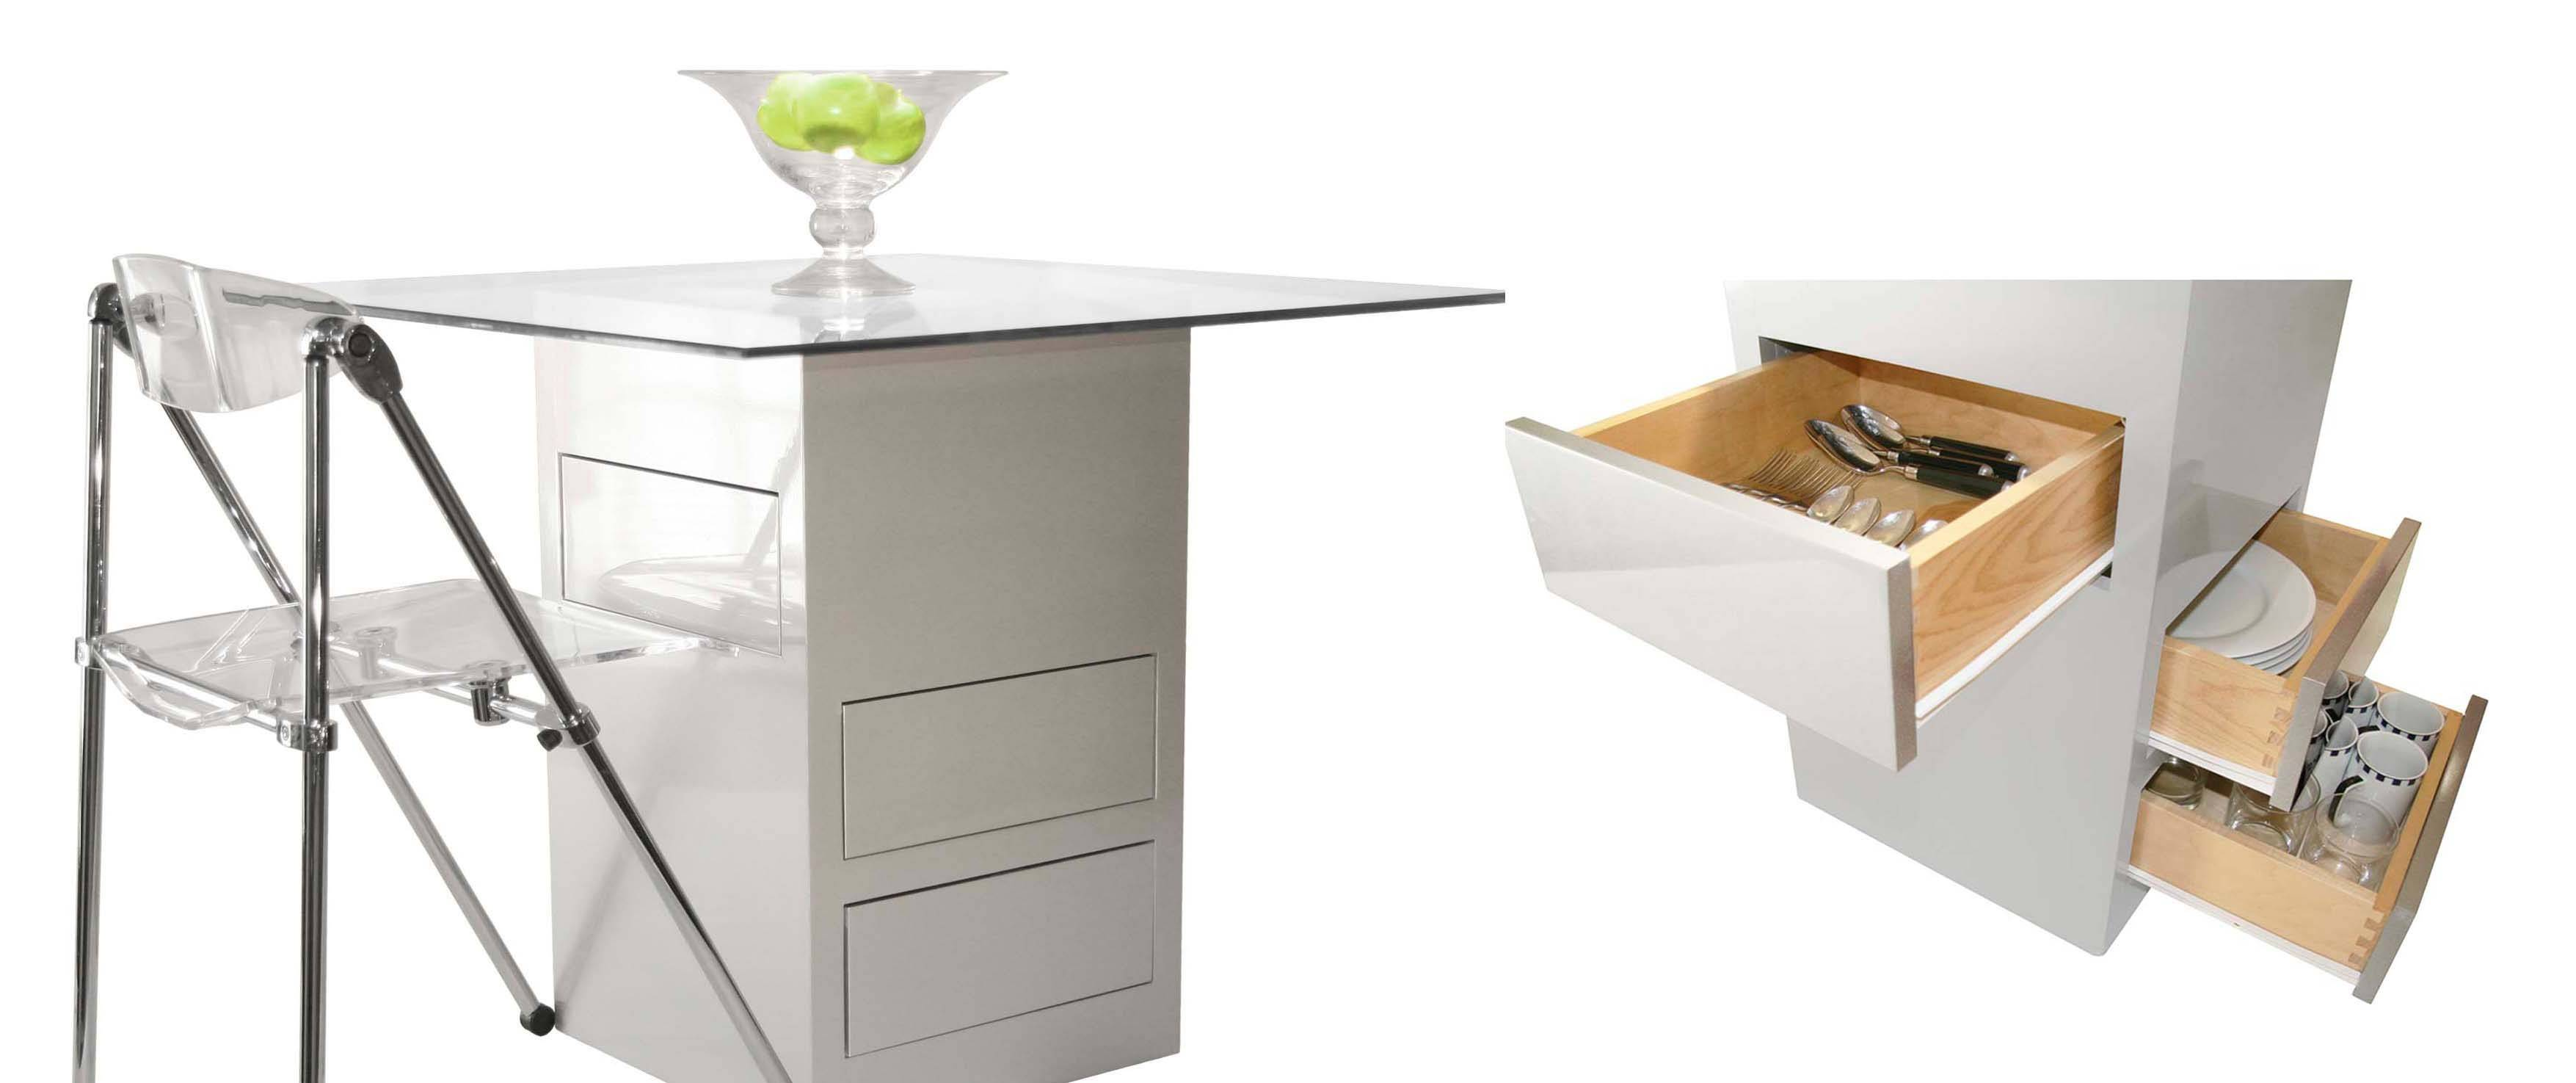 Itsy Bitsy Ritzy's Storage Pedestal Table and folding chair, left; the base of the table, right, has three drawers for storage and is one of the company's best sellers.